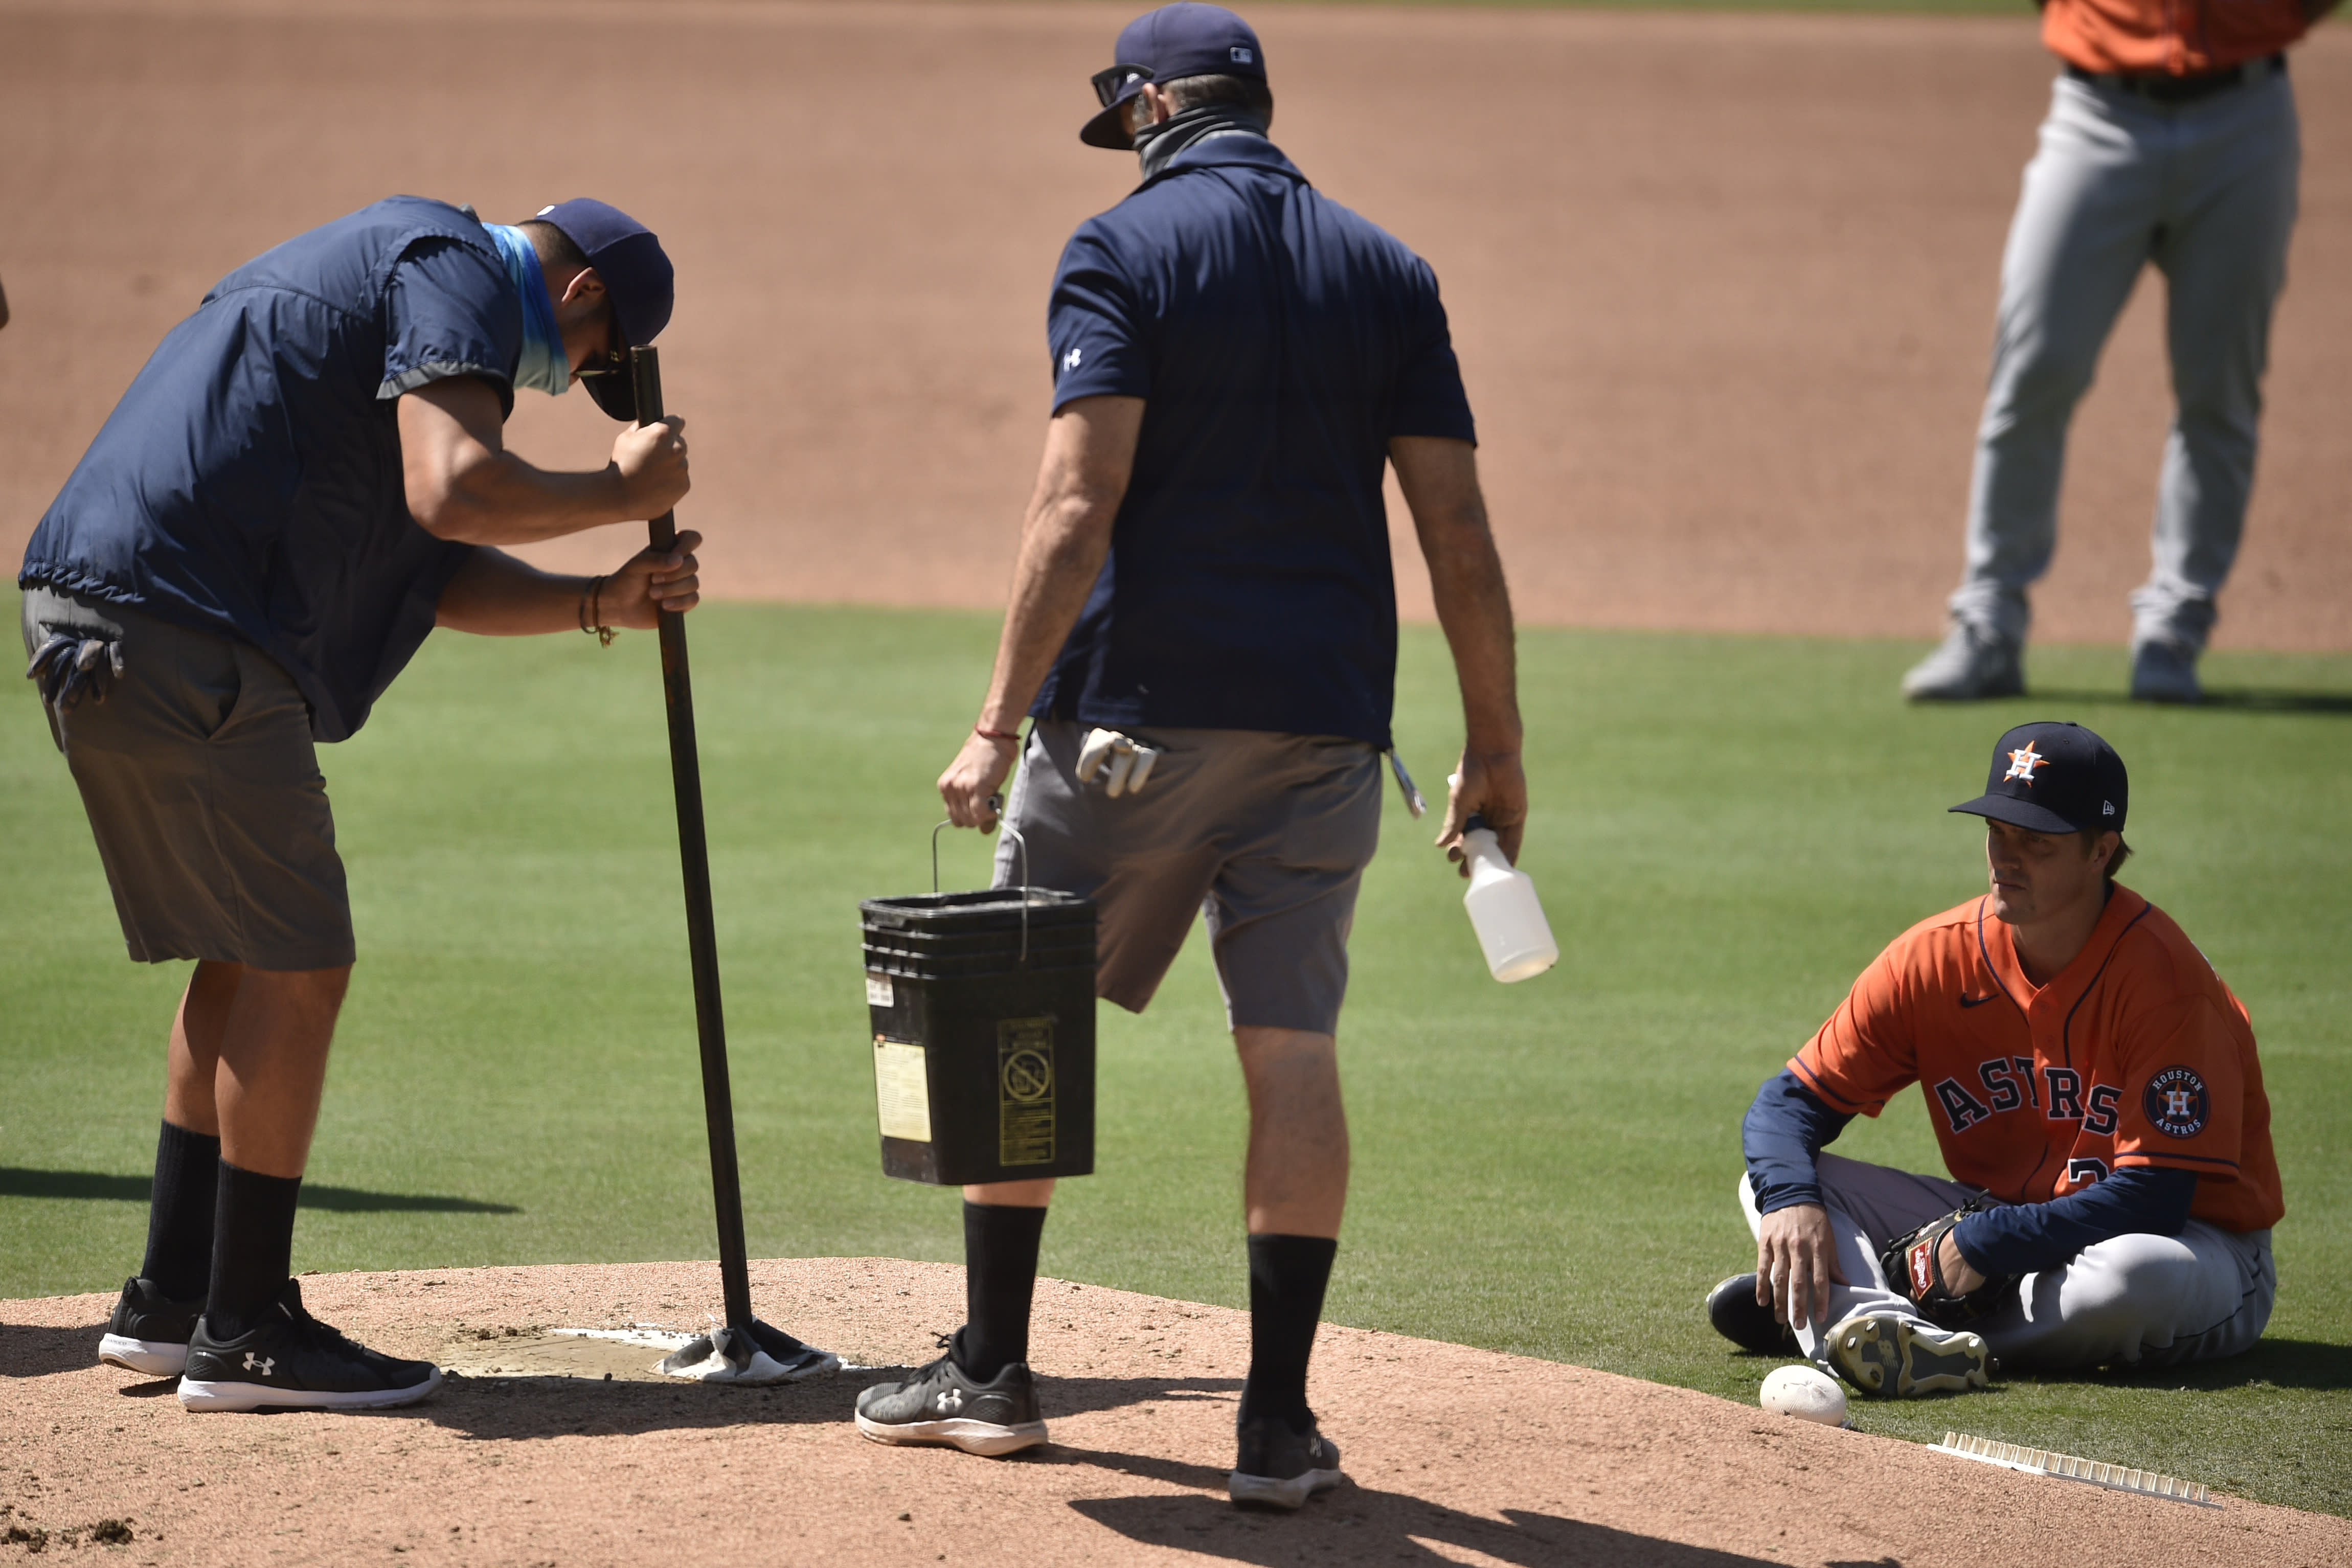 Houston Astros starting pitcher Zack Greinke, right, sits on the field as the San Diego Padres grounds crew work on the pitching mound during an in-game delay during the fourth inning of a baseball game in San Diego, Sunday, Aug. 23, 2020. (AP Photo/Kelvin Kuo)